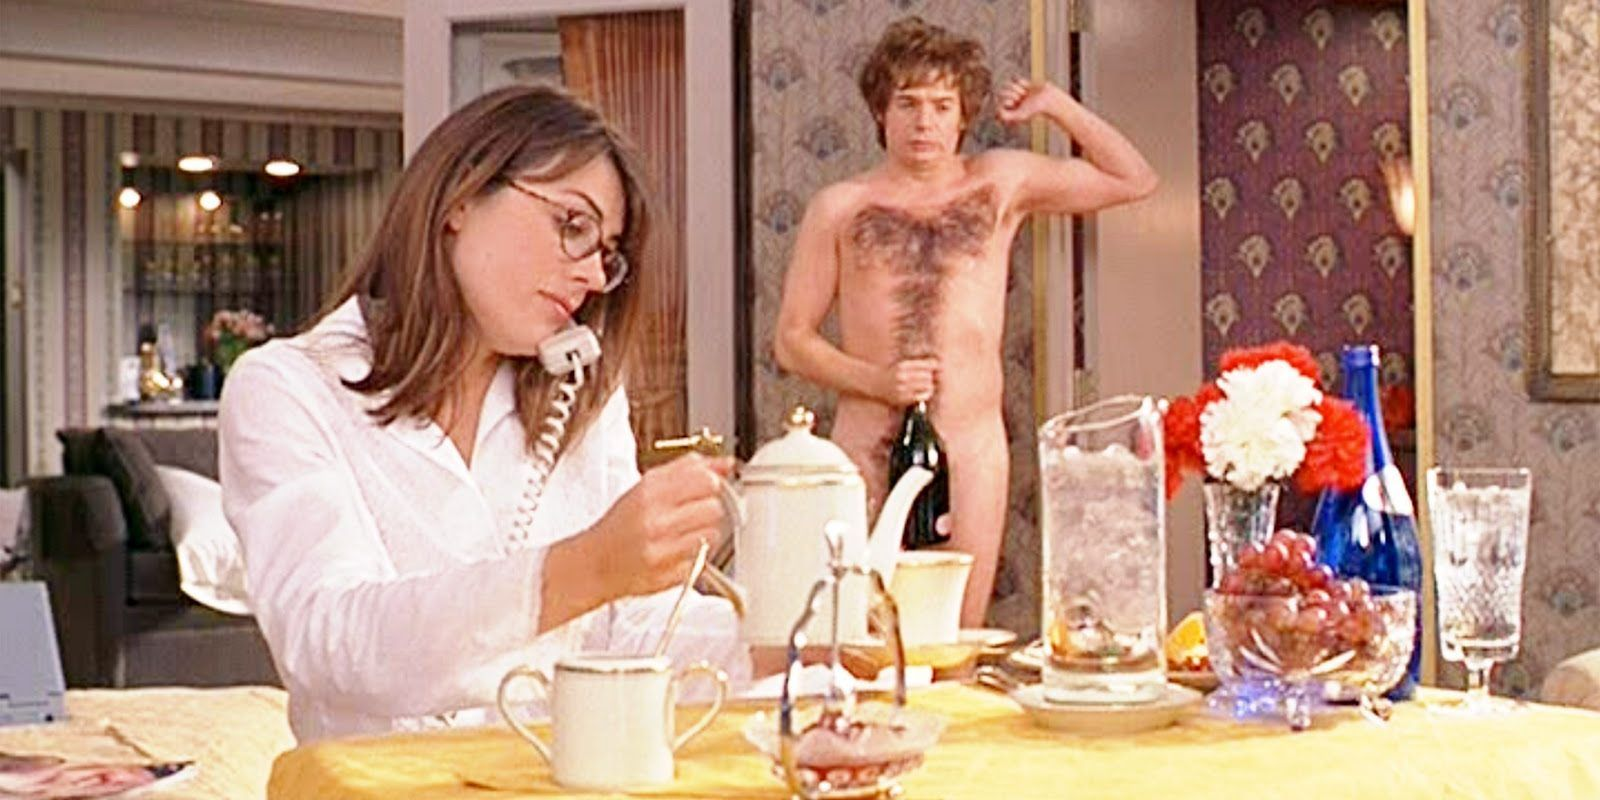 austin-powers-naked-photos